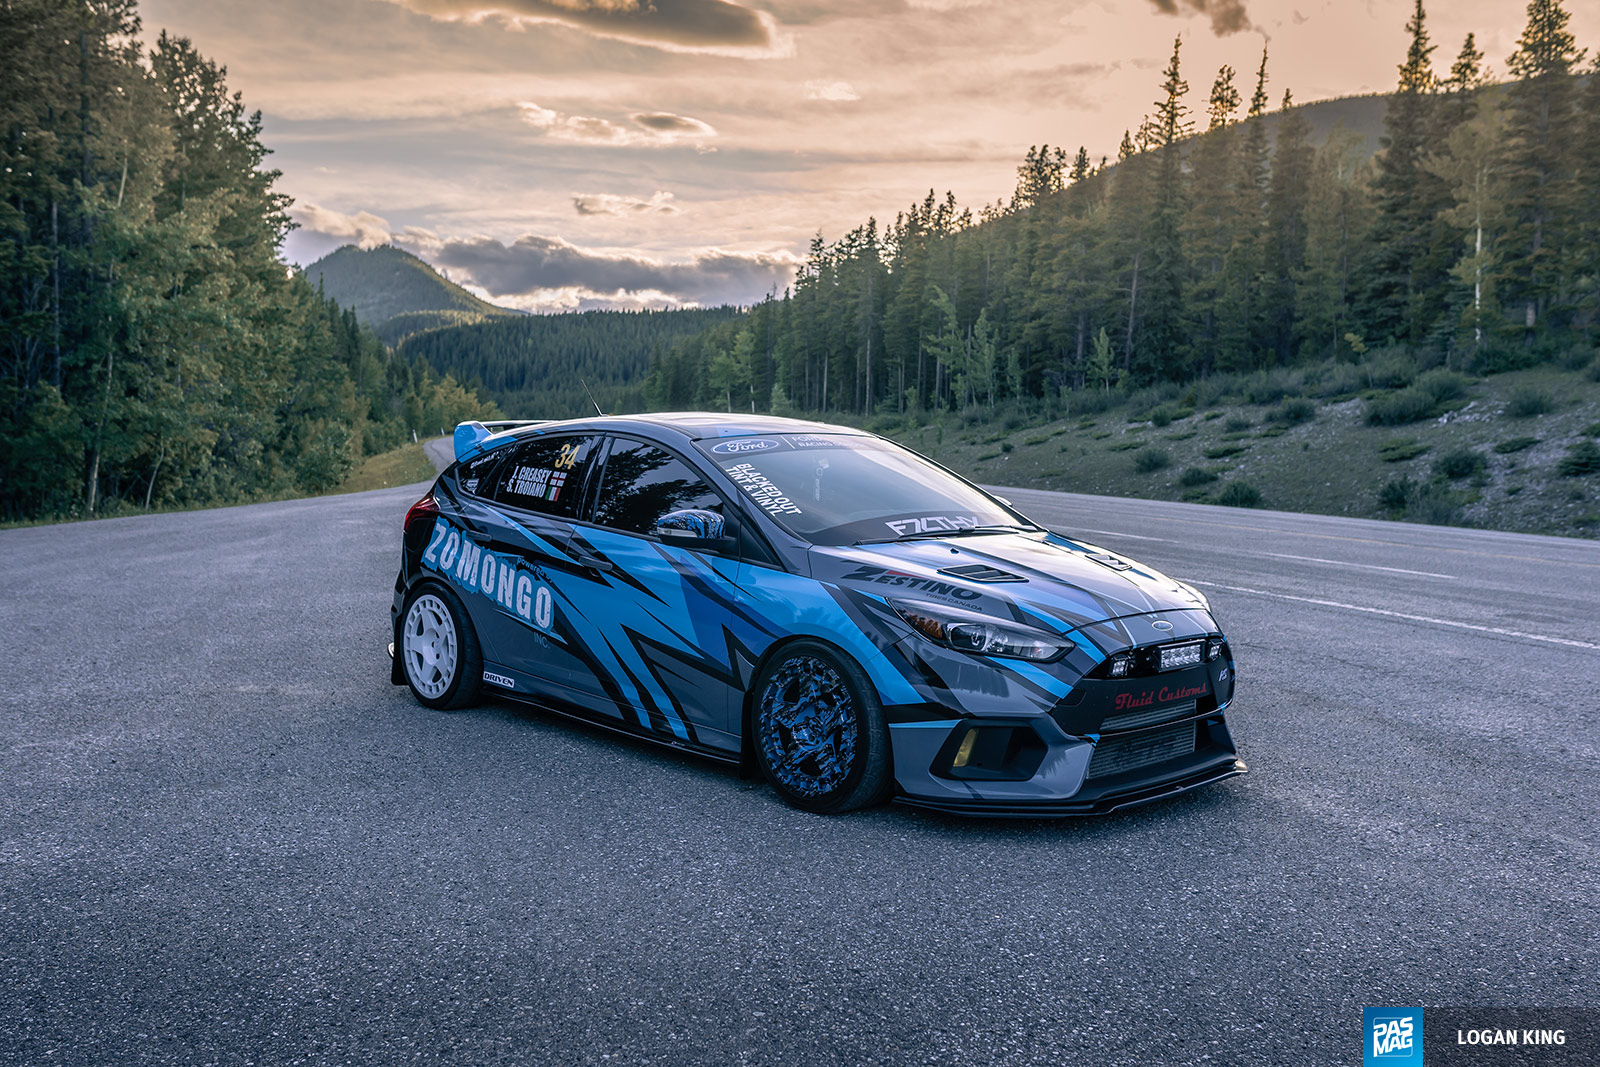 07 James Creasey 2017 Focus RS pasmag tuner battlegrounds driven champions